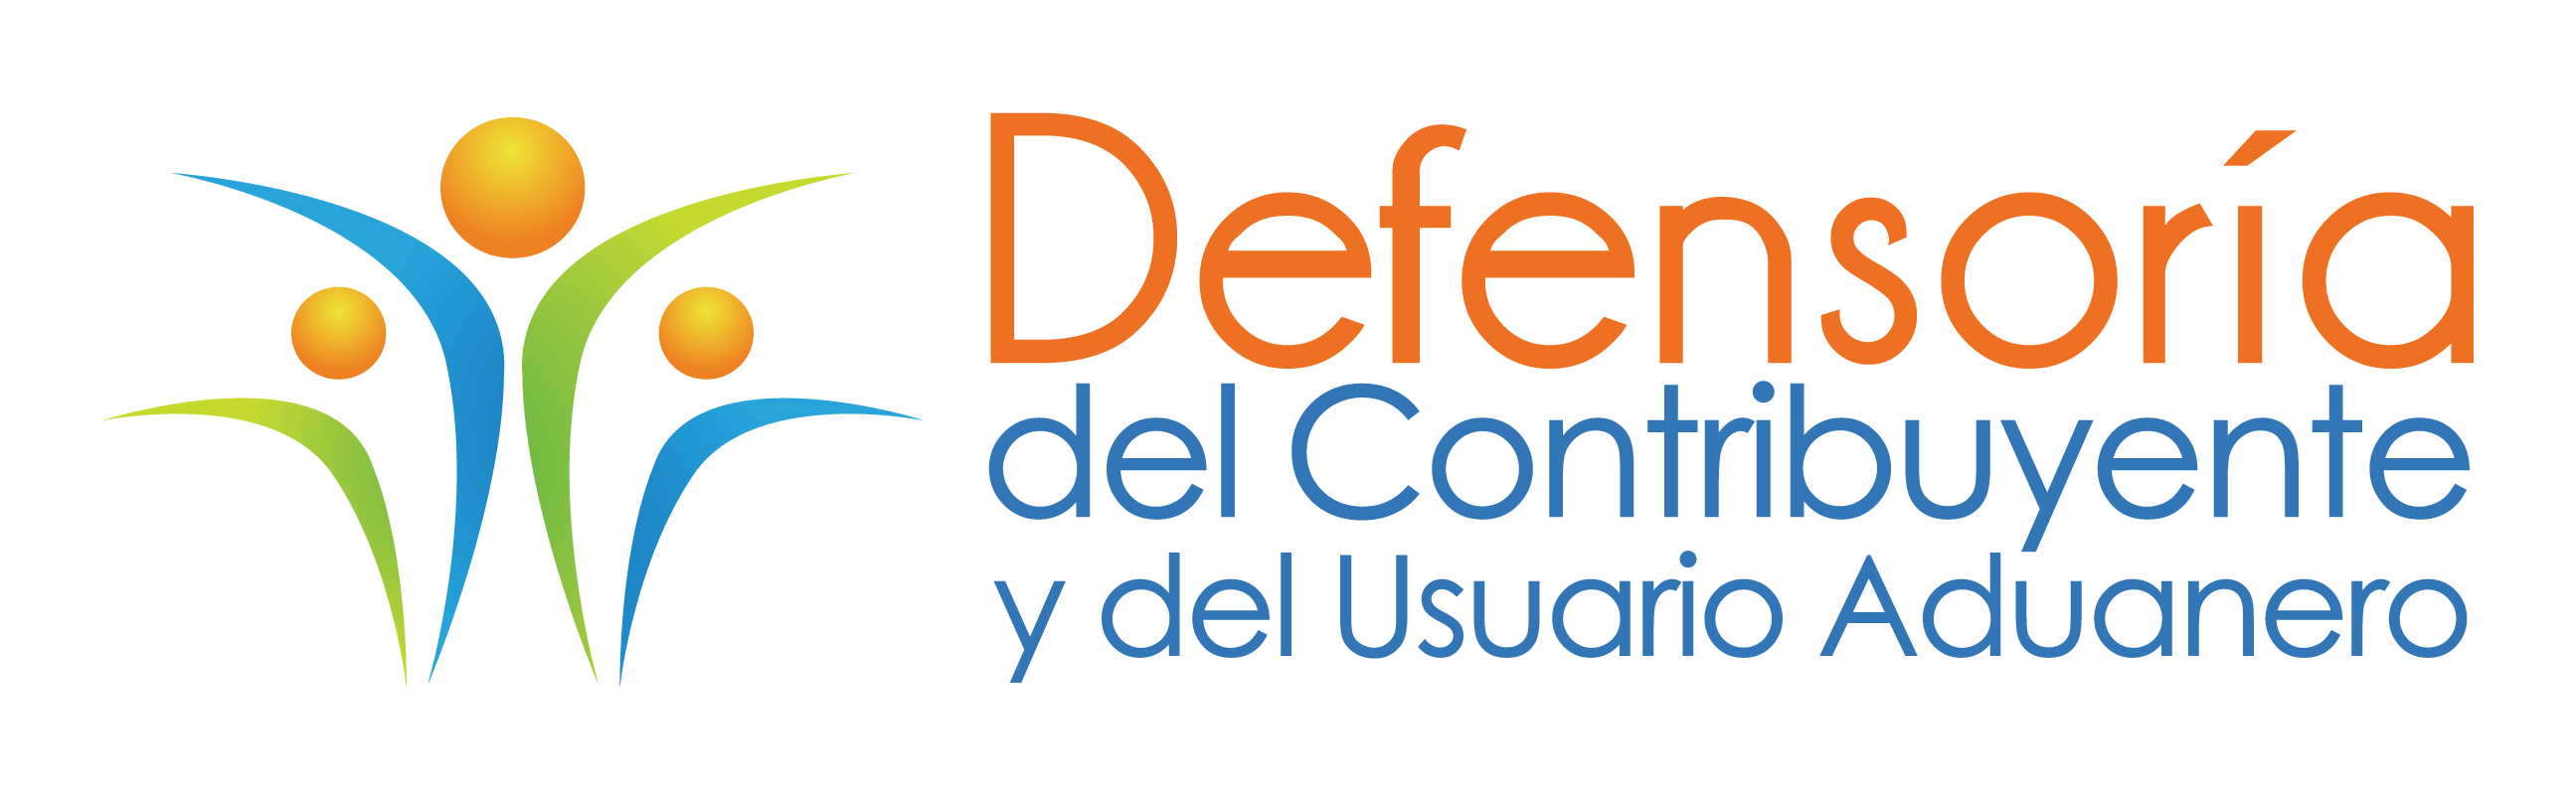 https://0201.nccdn.net/1_2/000/000/180/90c/Logo_Defensoria_Horizontal--1--2591x804.png